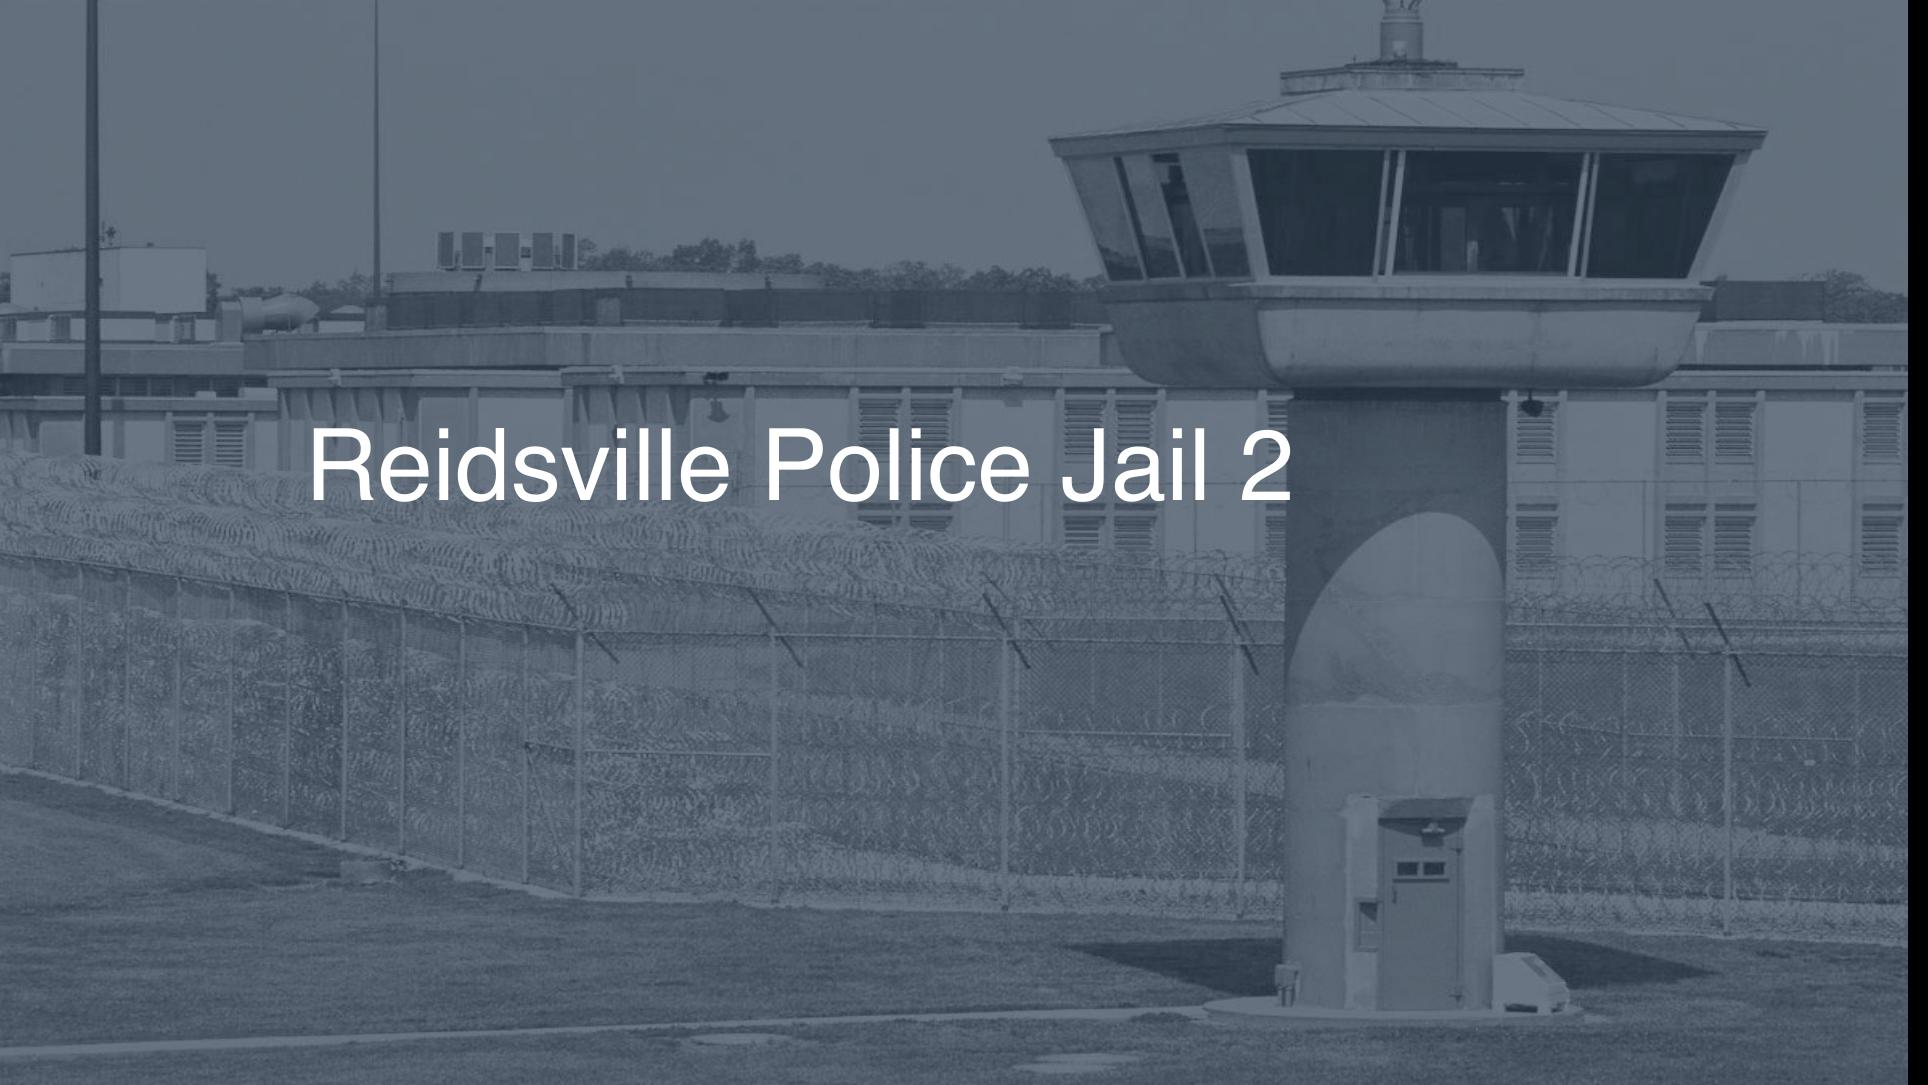 Reidsville Police Jail | Pigeonly - Inmate Search, Locate